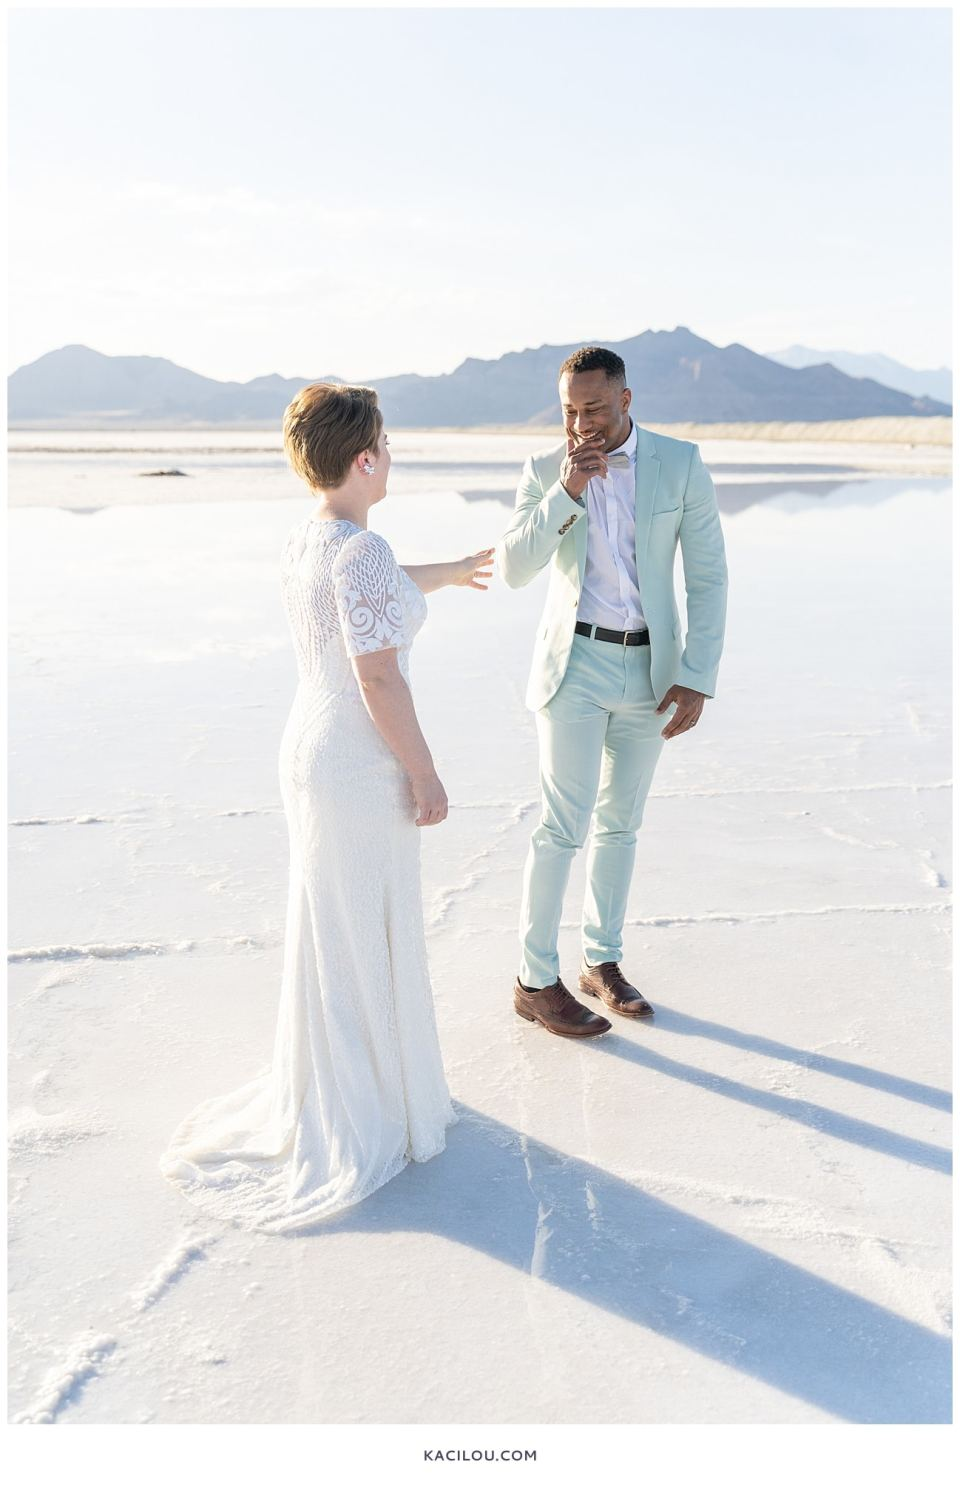 salt flats utah elopement tuesdae and ethan by kaci lou photography-18.jpg